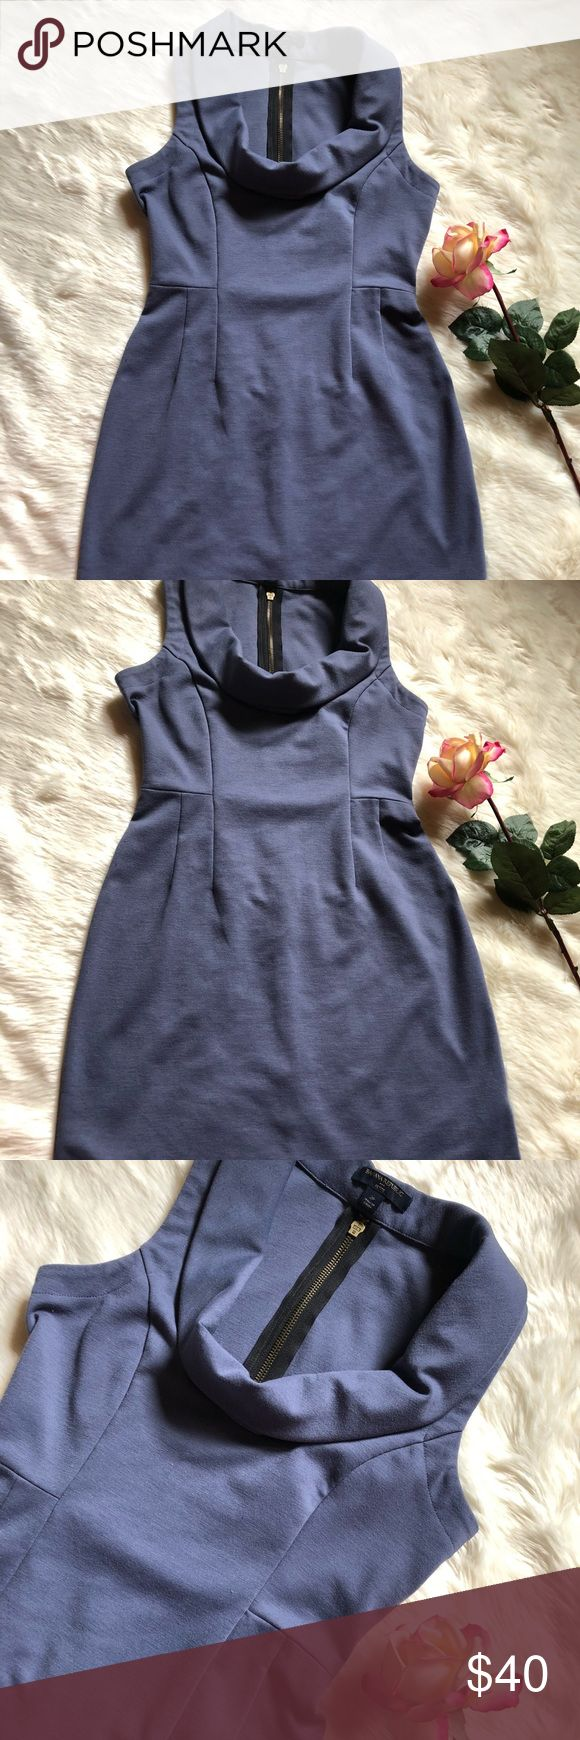 Banana Republic Petite Pencil Dress Light navy blue Stretchable material No flaws Smoke & pet free home 72% Polyester 23% Rayon 5% Spandex   Measurements Pit to pit: 16 inches Top to bottom: 32 1/2 inches Banana Republic Dresses